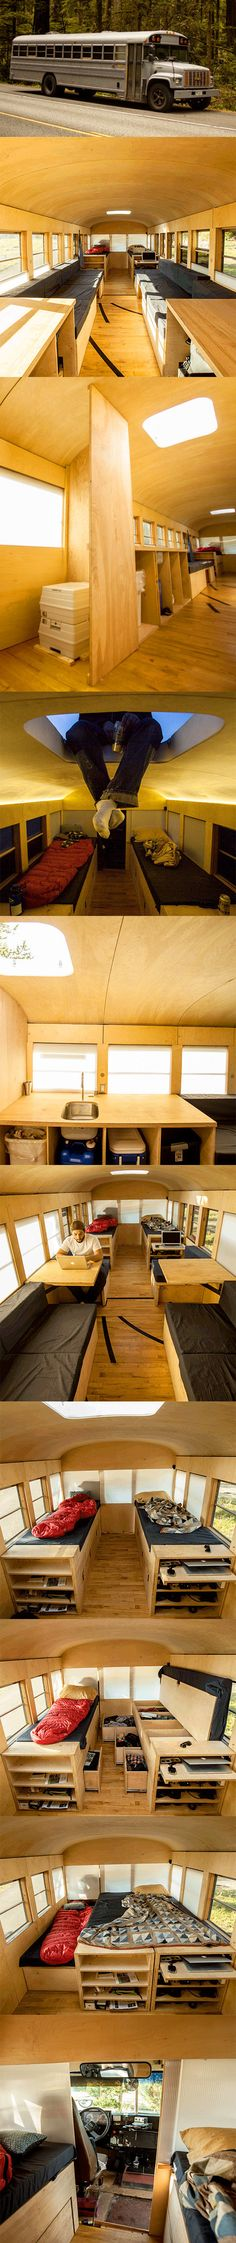 Very cool--Architecture student Hank Butitta converted old school bus into a 225 square foot mobile home with small kitchen, living room, and bedroom